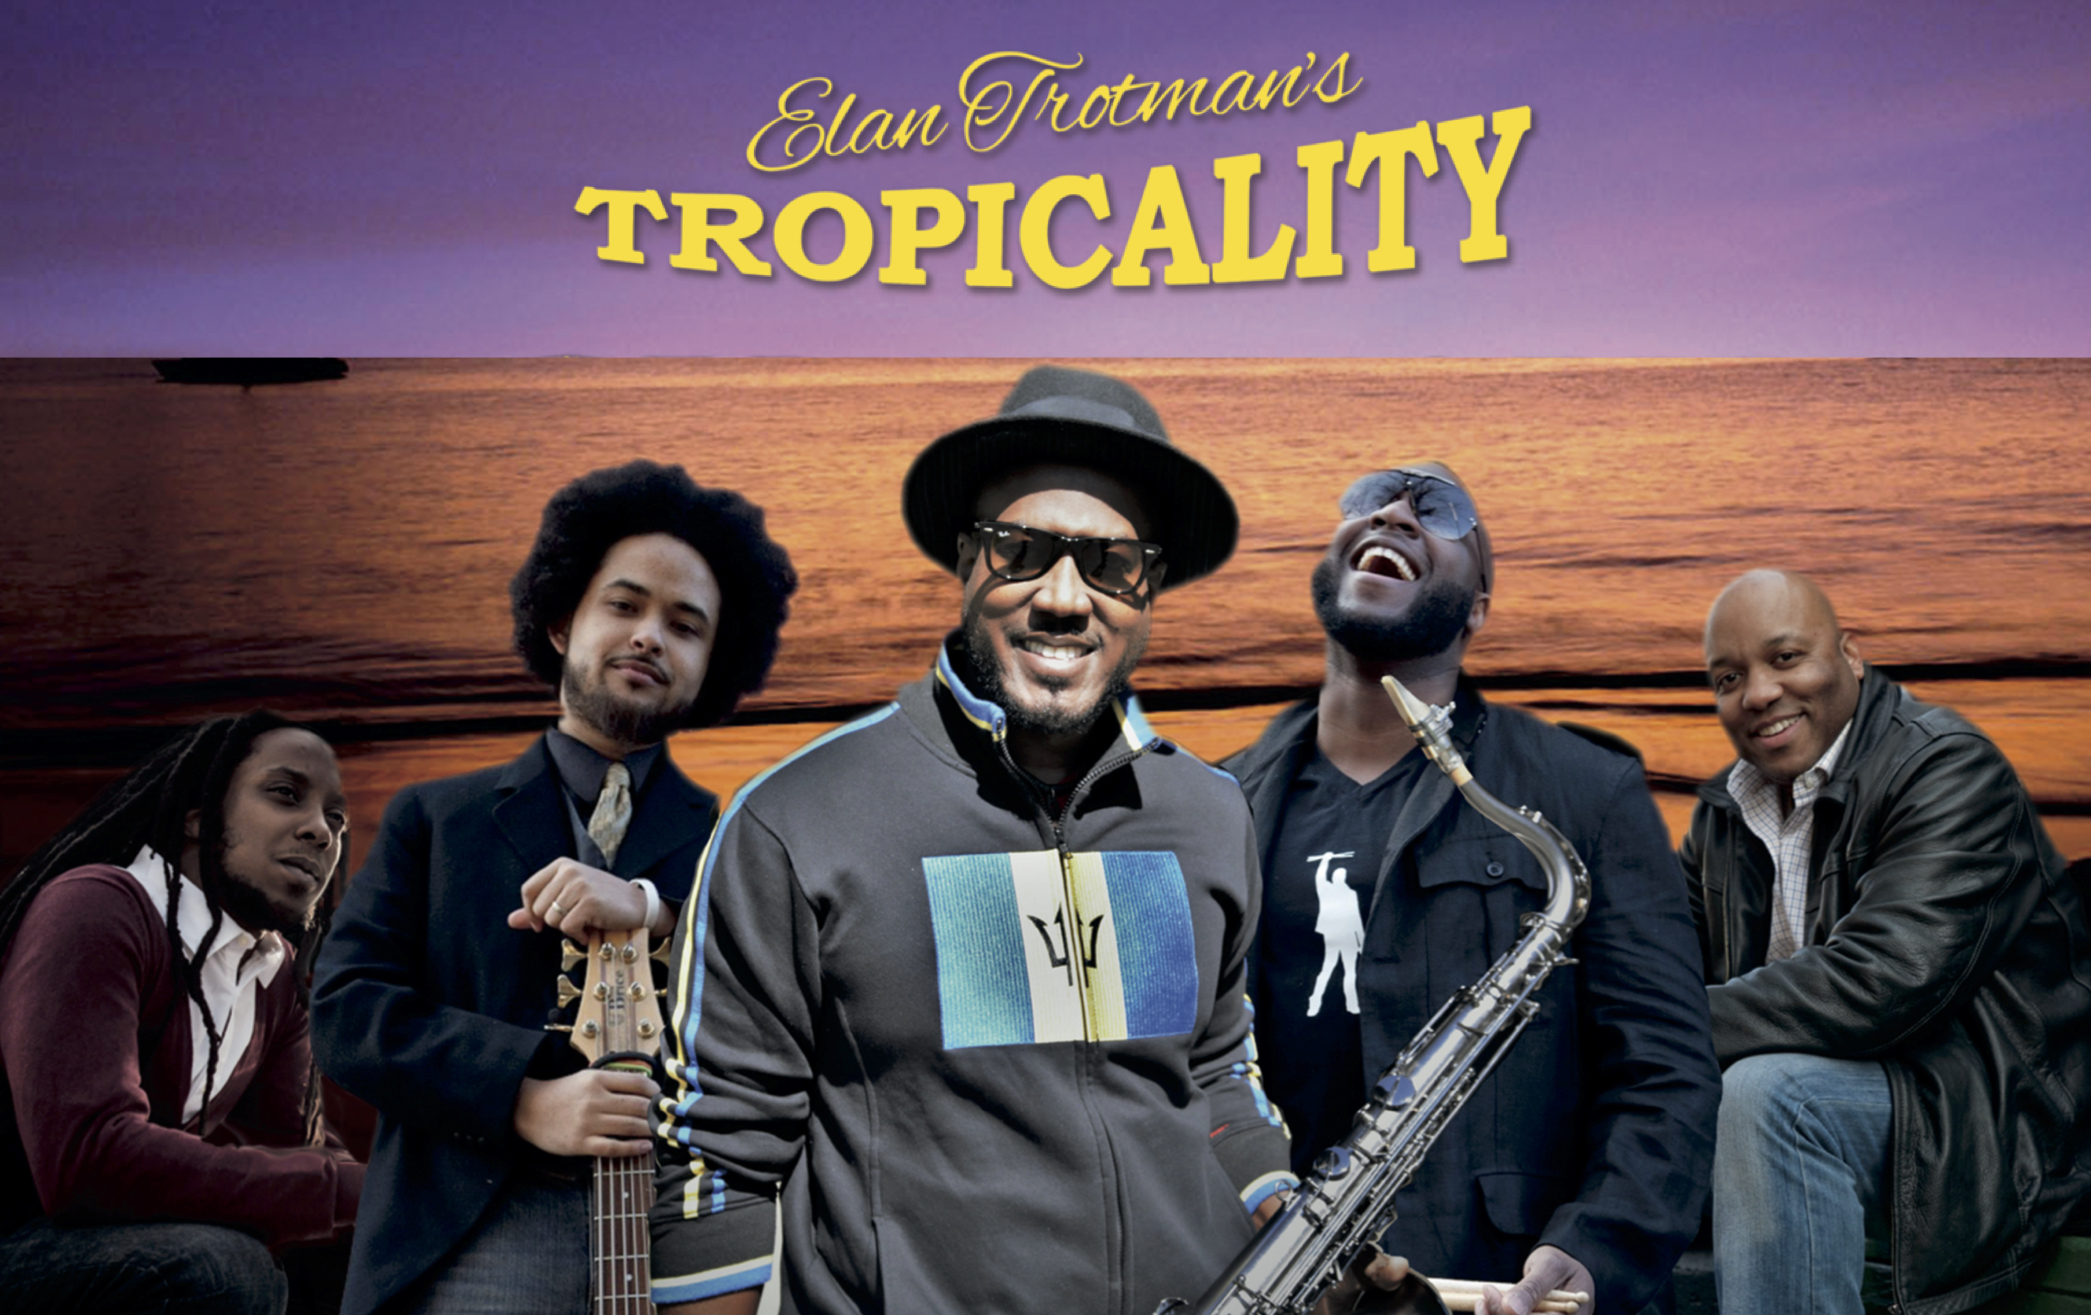 Elan Trotman's Tropicality Promo Photo